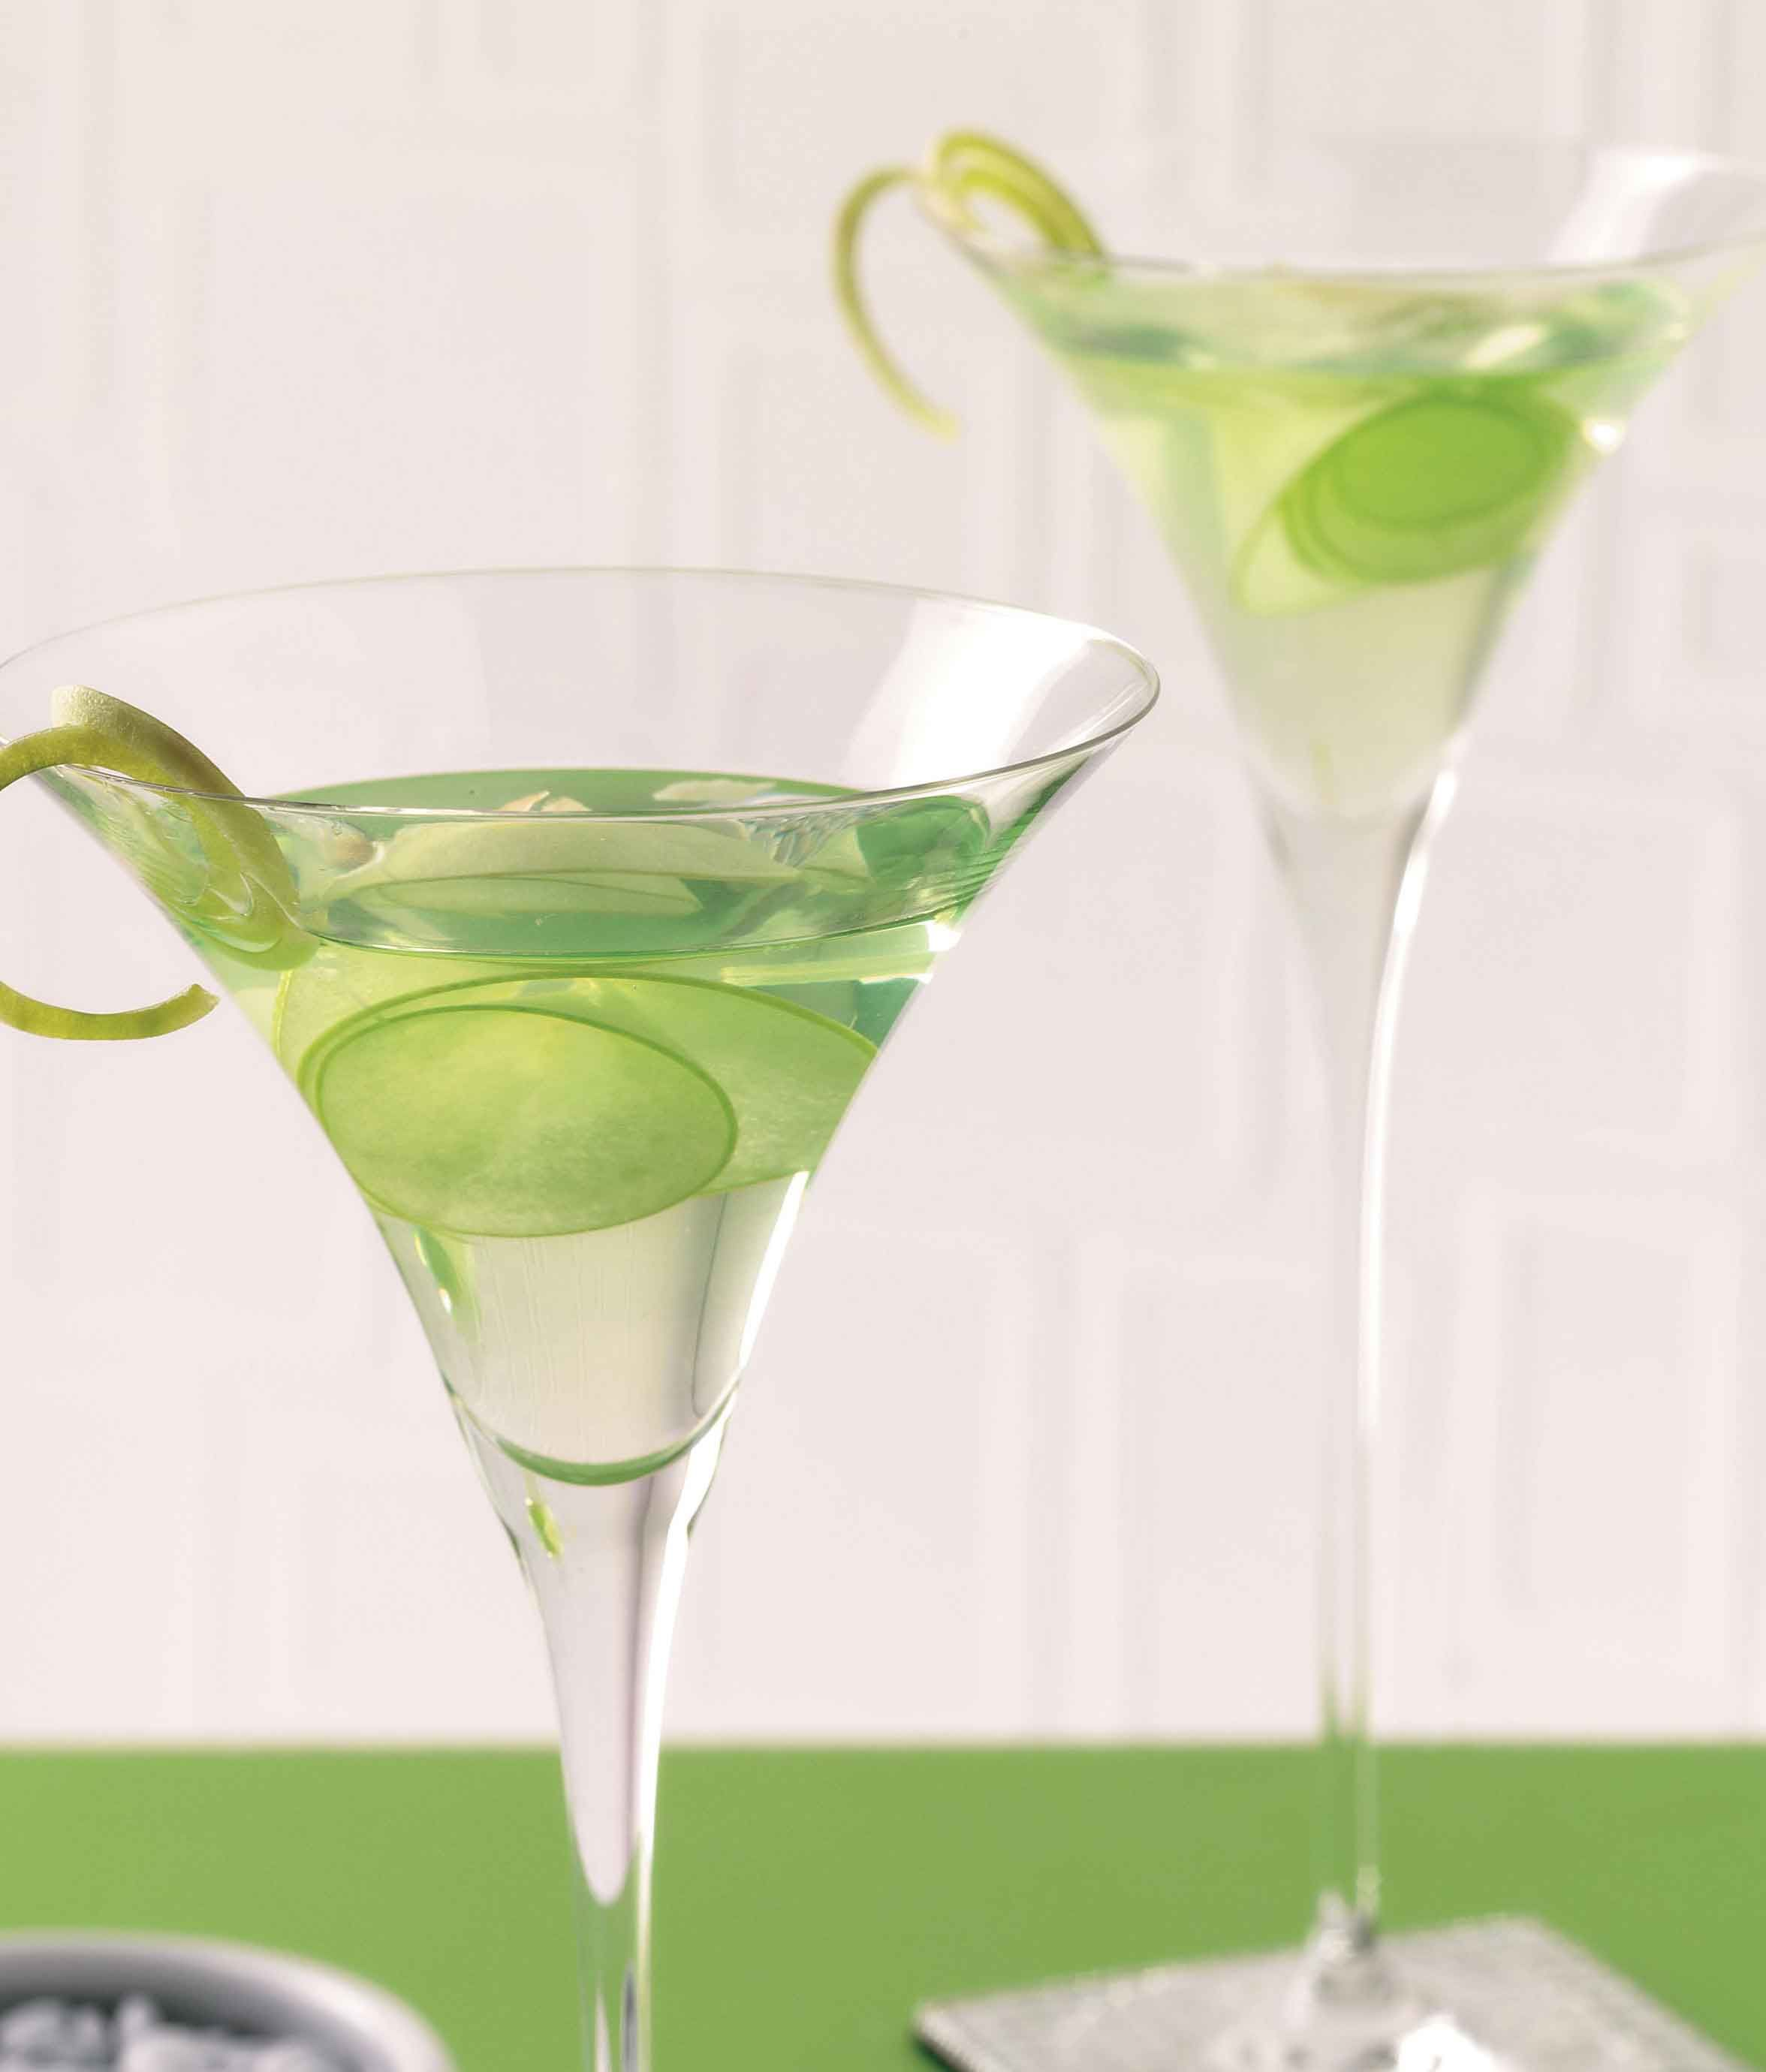 St. Patrick's Day Drink Recipes: 12 Green Cocktails to Celebrate! - Forkly